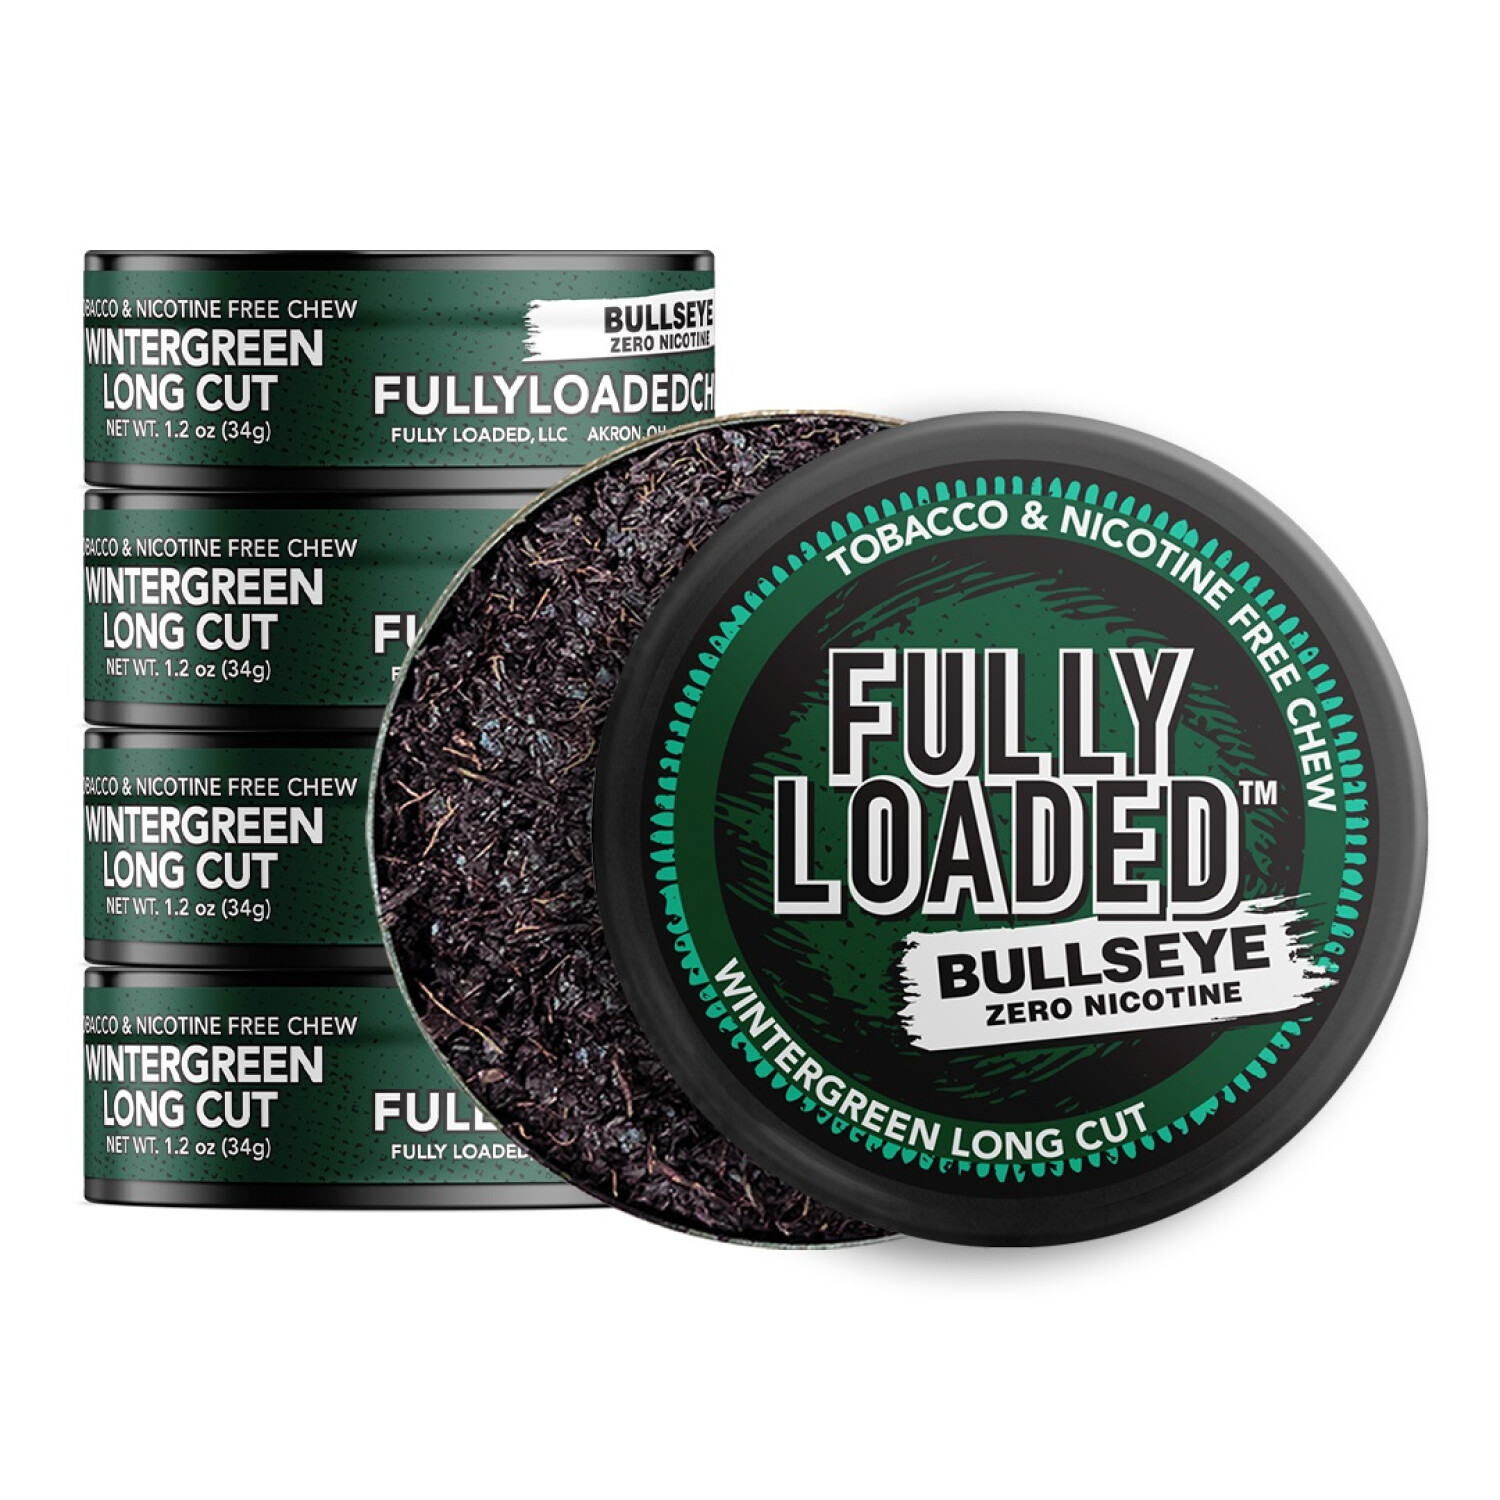 Fully Loaded Chew Tobacco and Nicotine Free Wintergreen Bullseye Long Cut Refreshing Flavor, Chewing Alternative-5 Cans